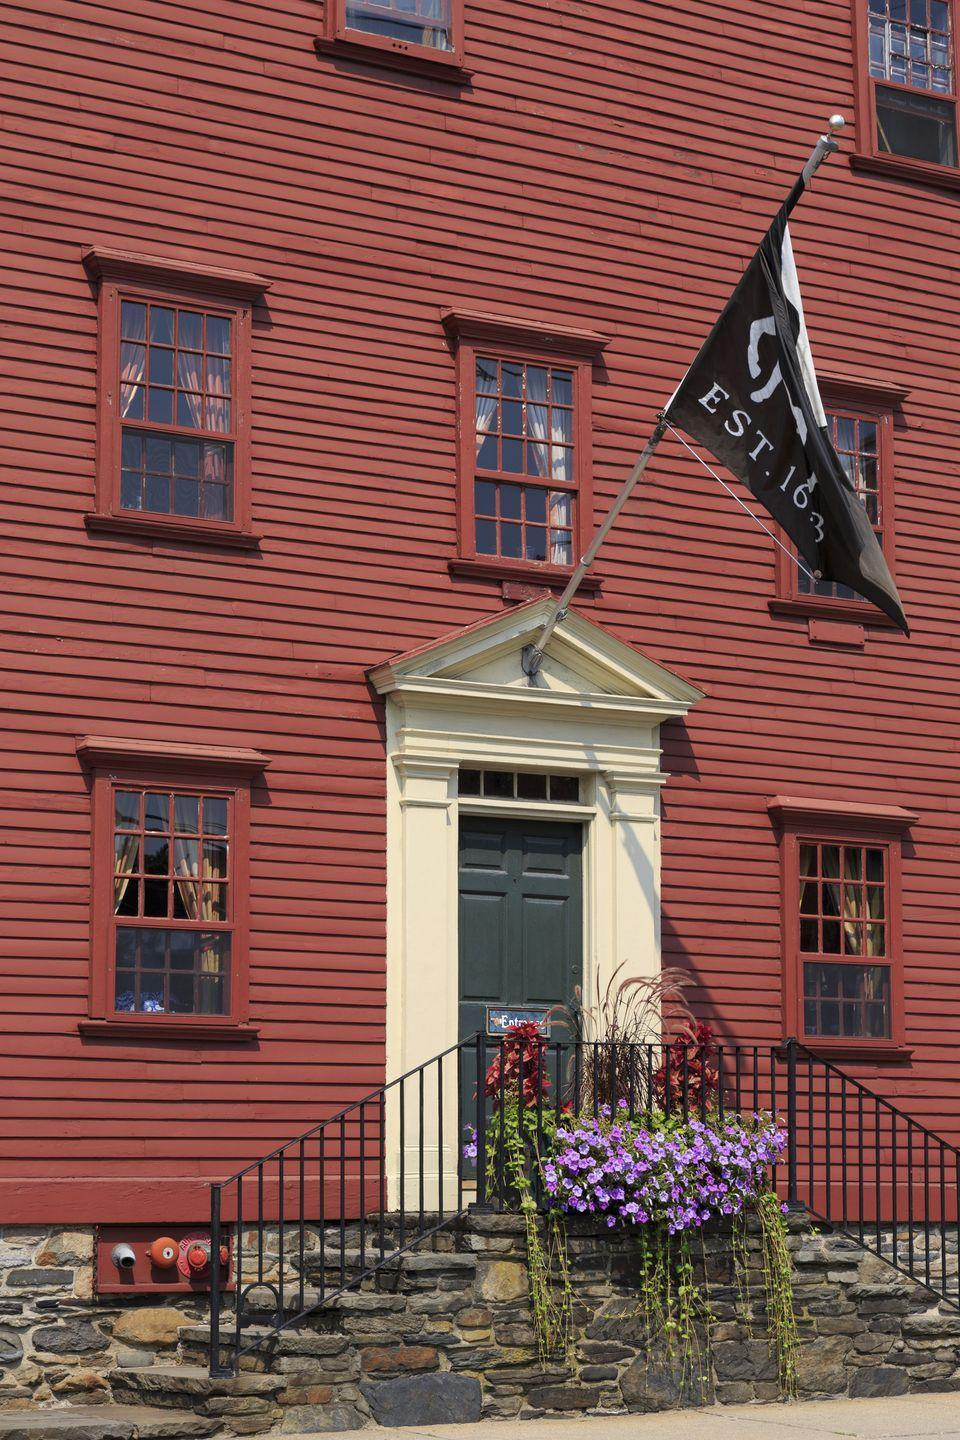 """<p><a href=""""https://whitehorsenewport.com/"""" rel=""""nofollow noopener"""" target=""""_blank"""" data-ylk=""""slk:The White Horse Tavern"""" class=""""link rapid-noclick-resp"""">The White Horse Tavern</a> in Newport, Rhode Island has been a popular spot to grab an ale since 1673, making it the <a href=""""http://www.thecoolist.com/10-of-the-oldest-most-historic-bars-in-the-usa/"""" rel=""""nofollow noopener"""" target=""""_blank"""" data-ylk=""""slk:oldest tavern in America"""" class=""""link rapid-noclick-resp"""">oldest tavern in America</a>. At nearly 350 years old, the restaurant is still up and running today! </p>"""